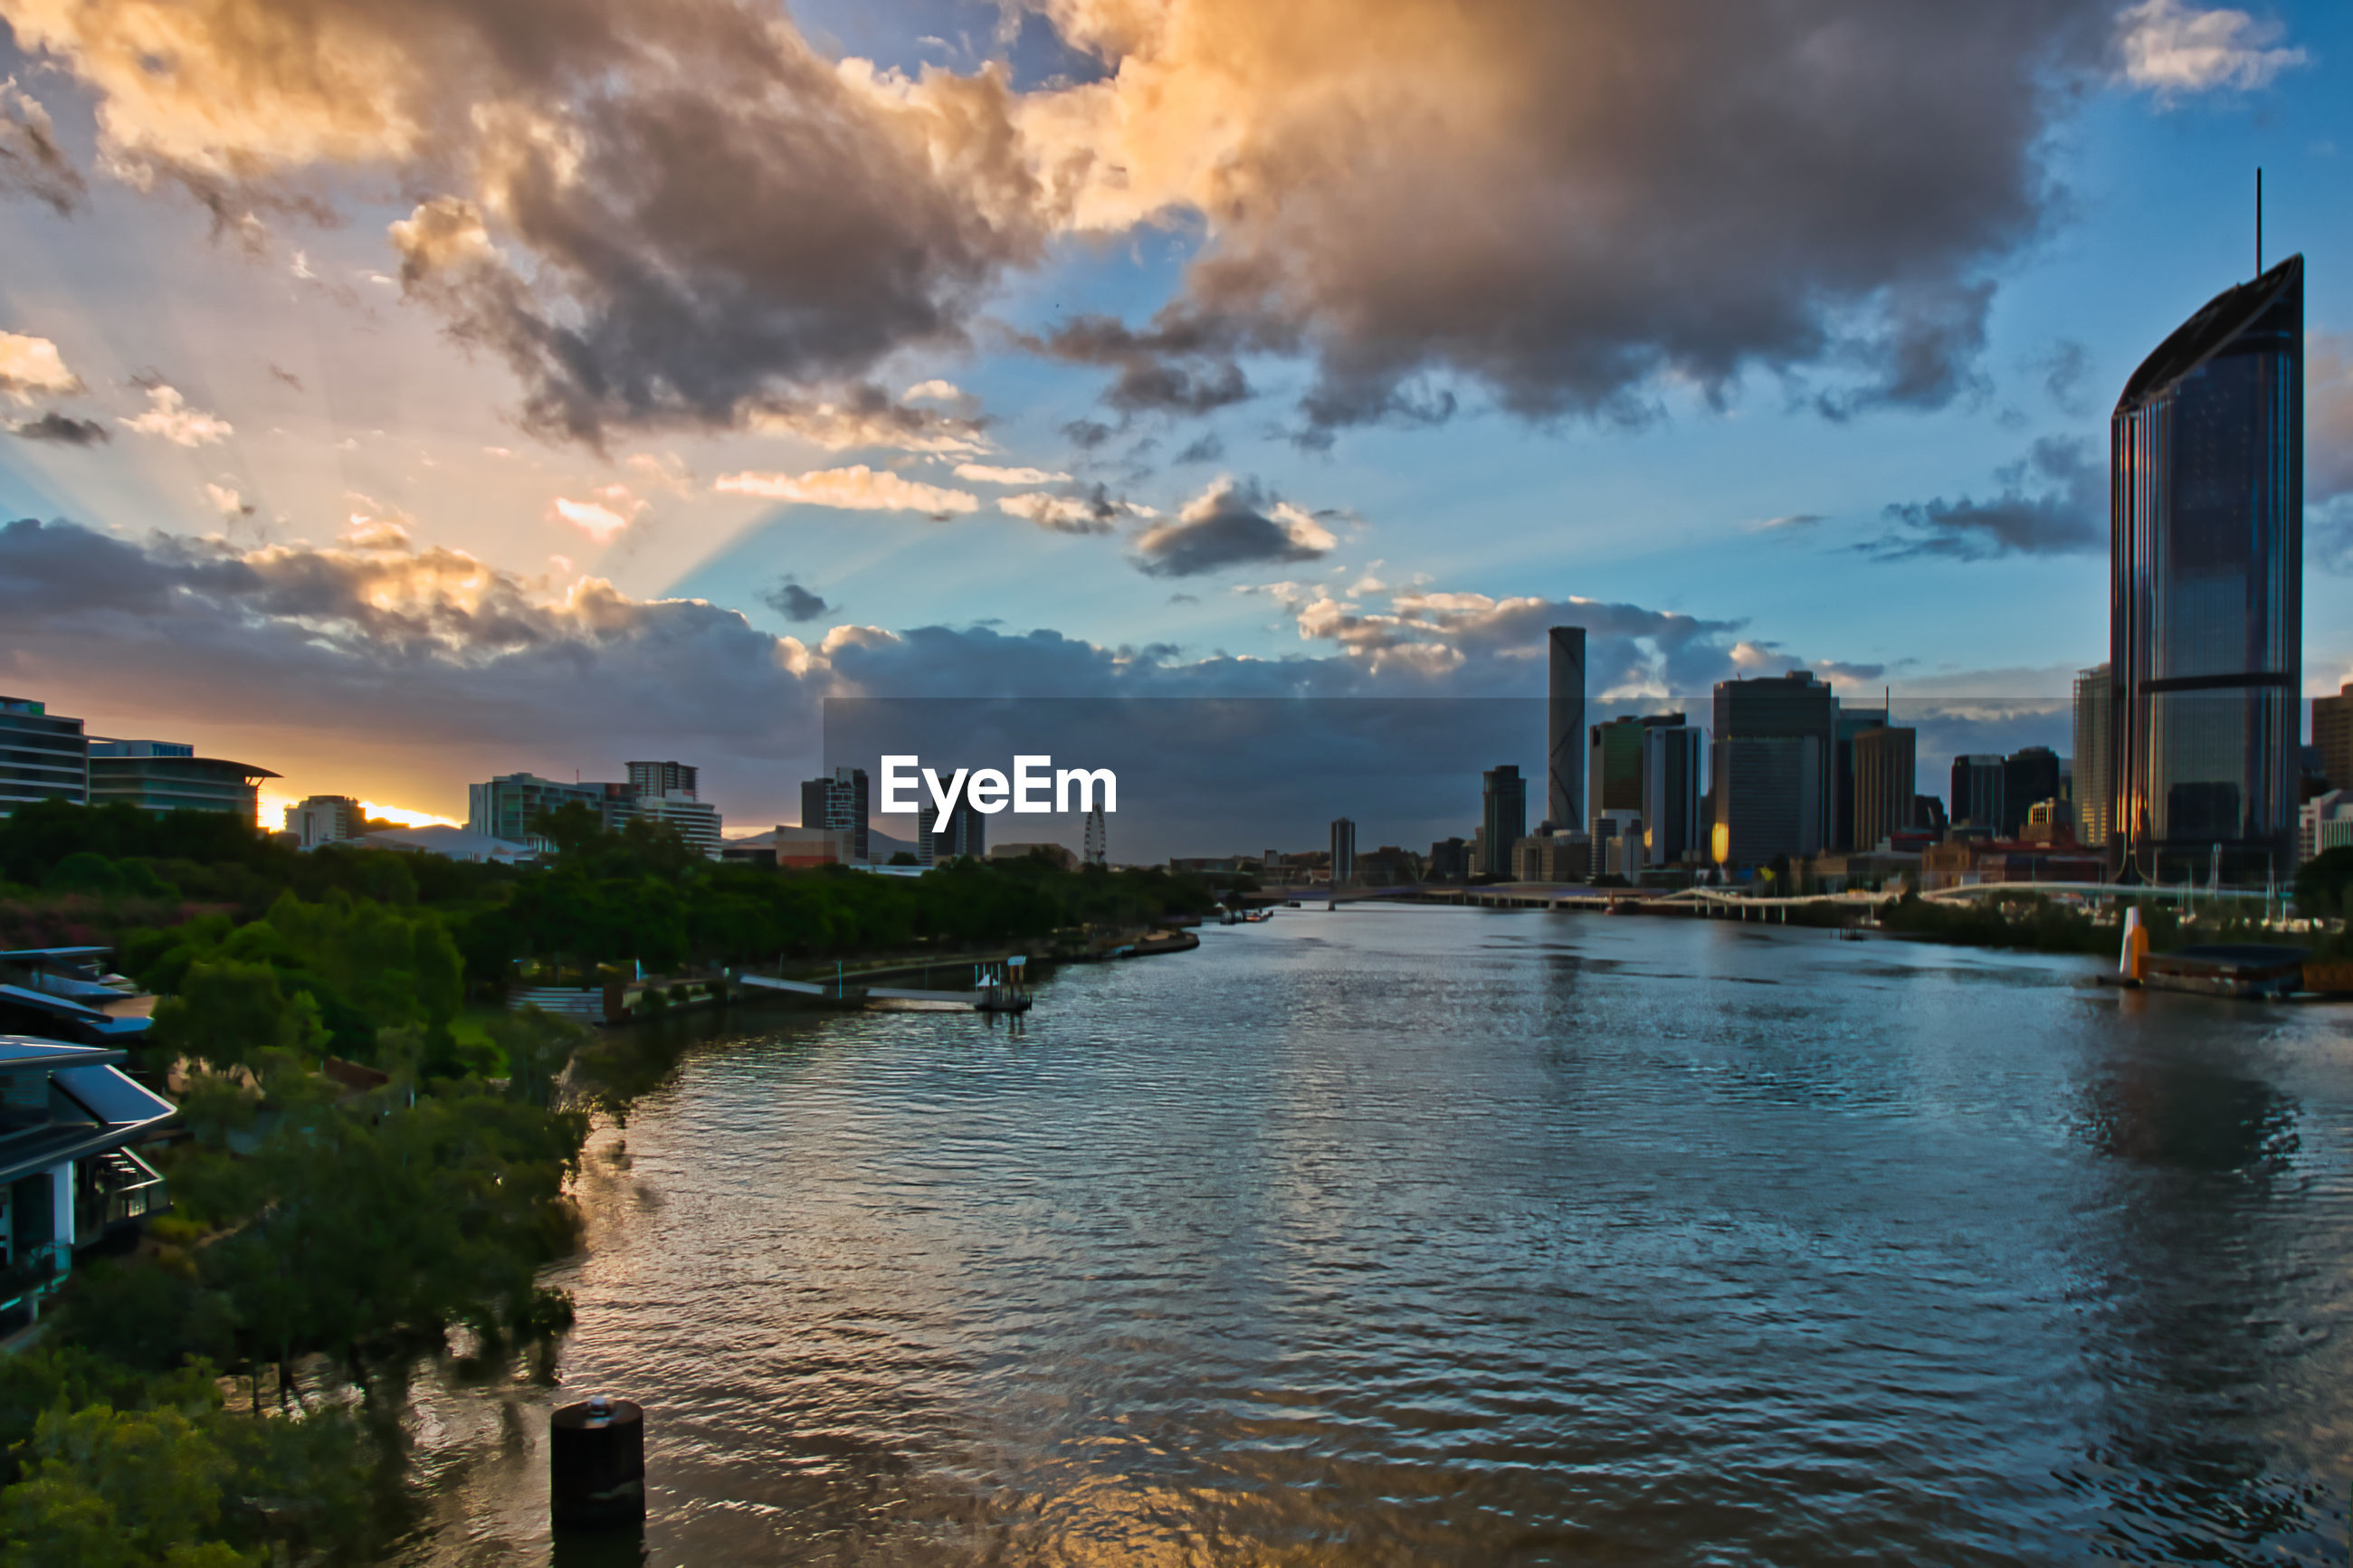 RIVER BY BUILDINGS AGAINST SKY DURING SUNSET